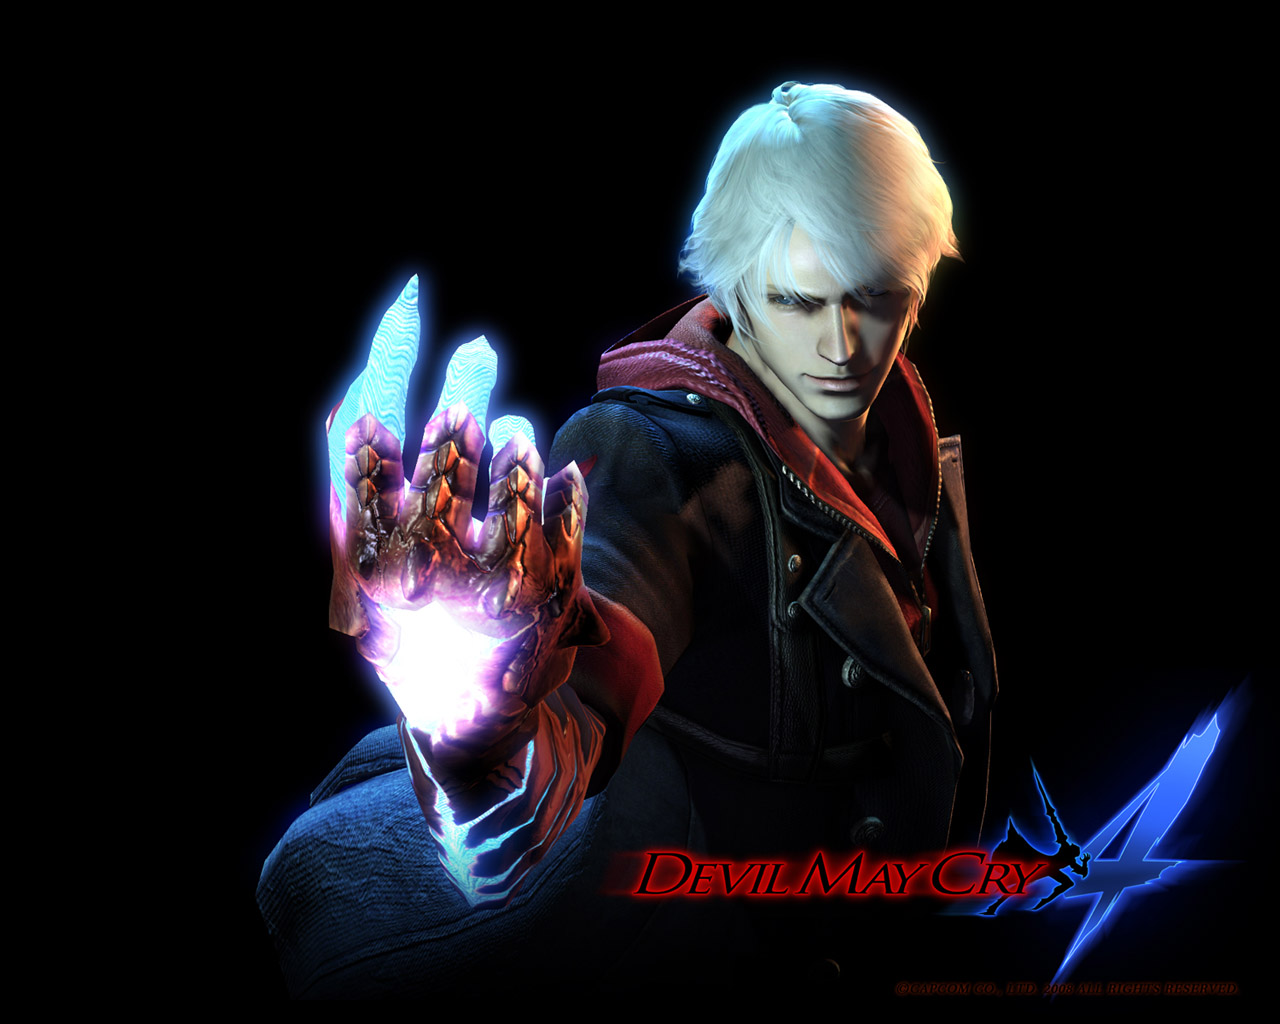 http://3.bp.blogspot.com/_ZHbPMbYYglY/TERUnmZmuhI/AAAAAAAAAFY/qzo_Gq4p2ZQ/s1600/devil-may-cry-4-wallpaper-wp20080222_1.jpg